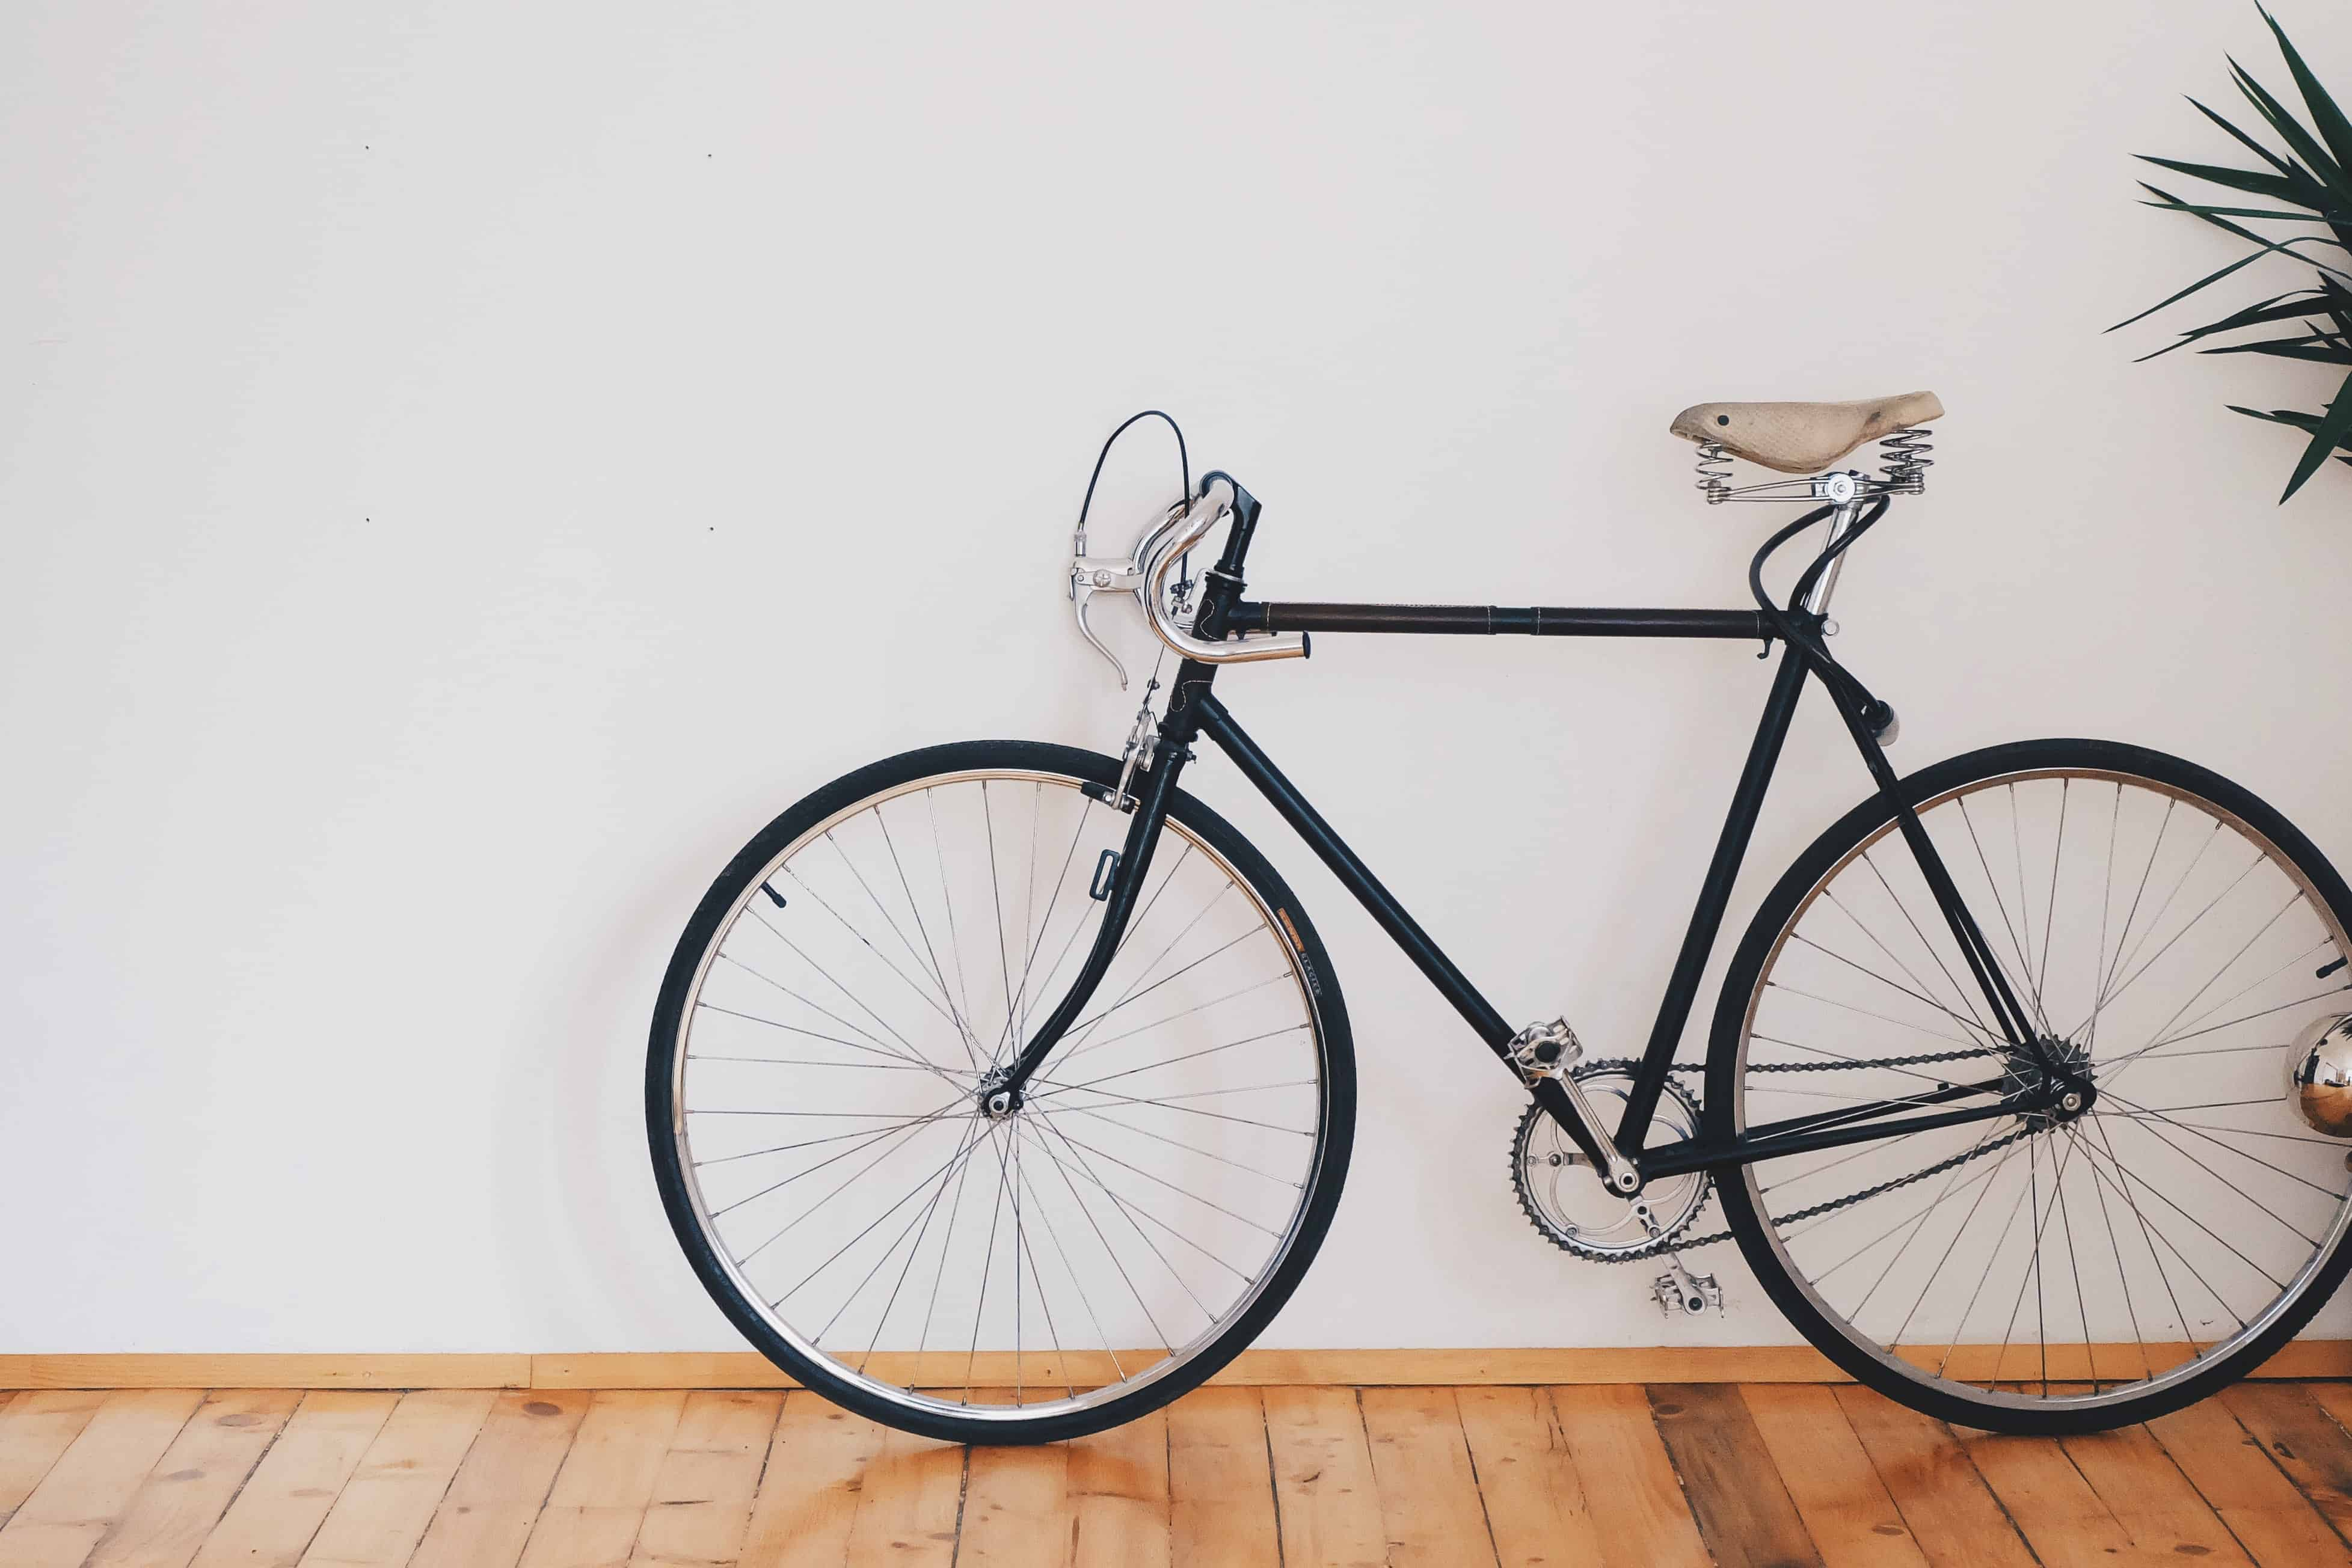 Activity Bicycle wooden floors